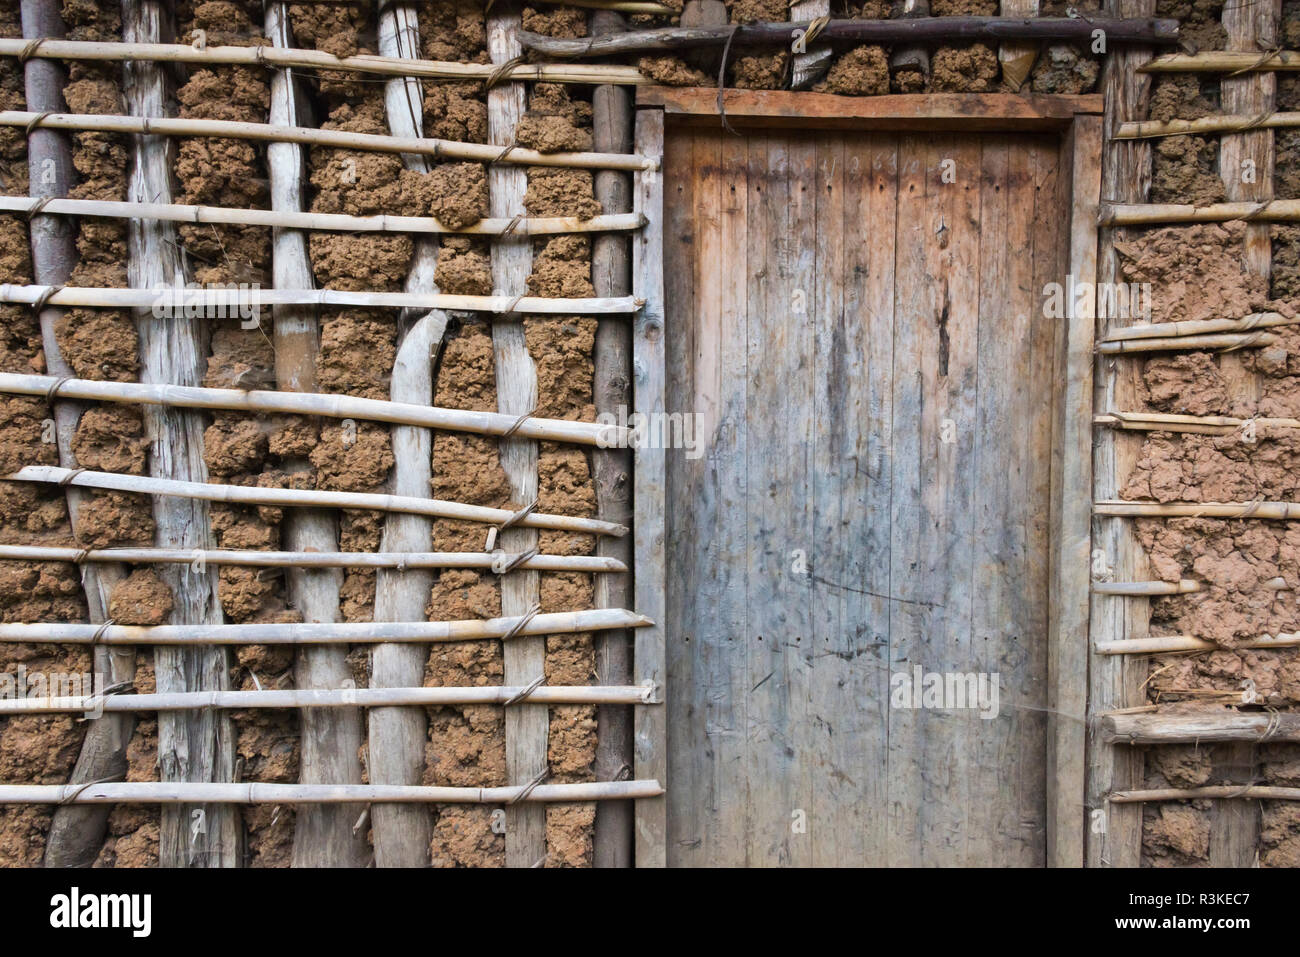 Door of local people's village house, Rwanda - Stock Image